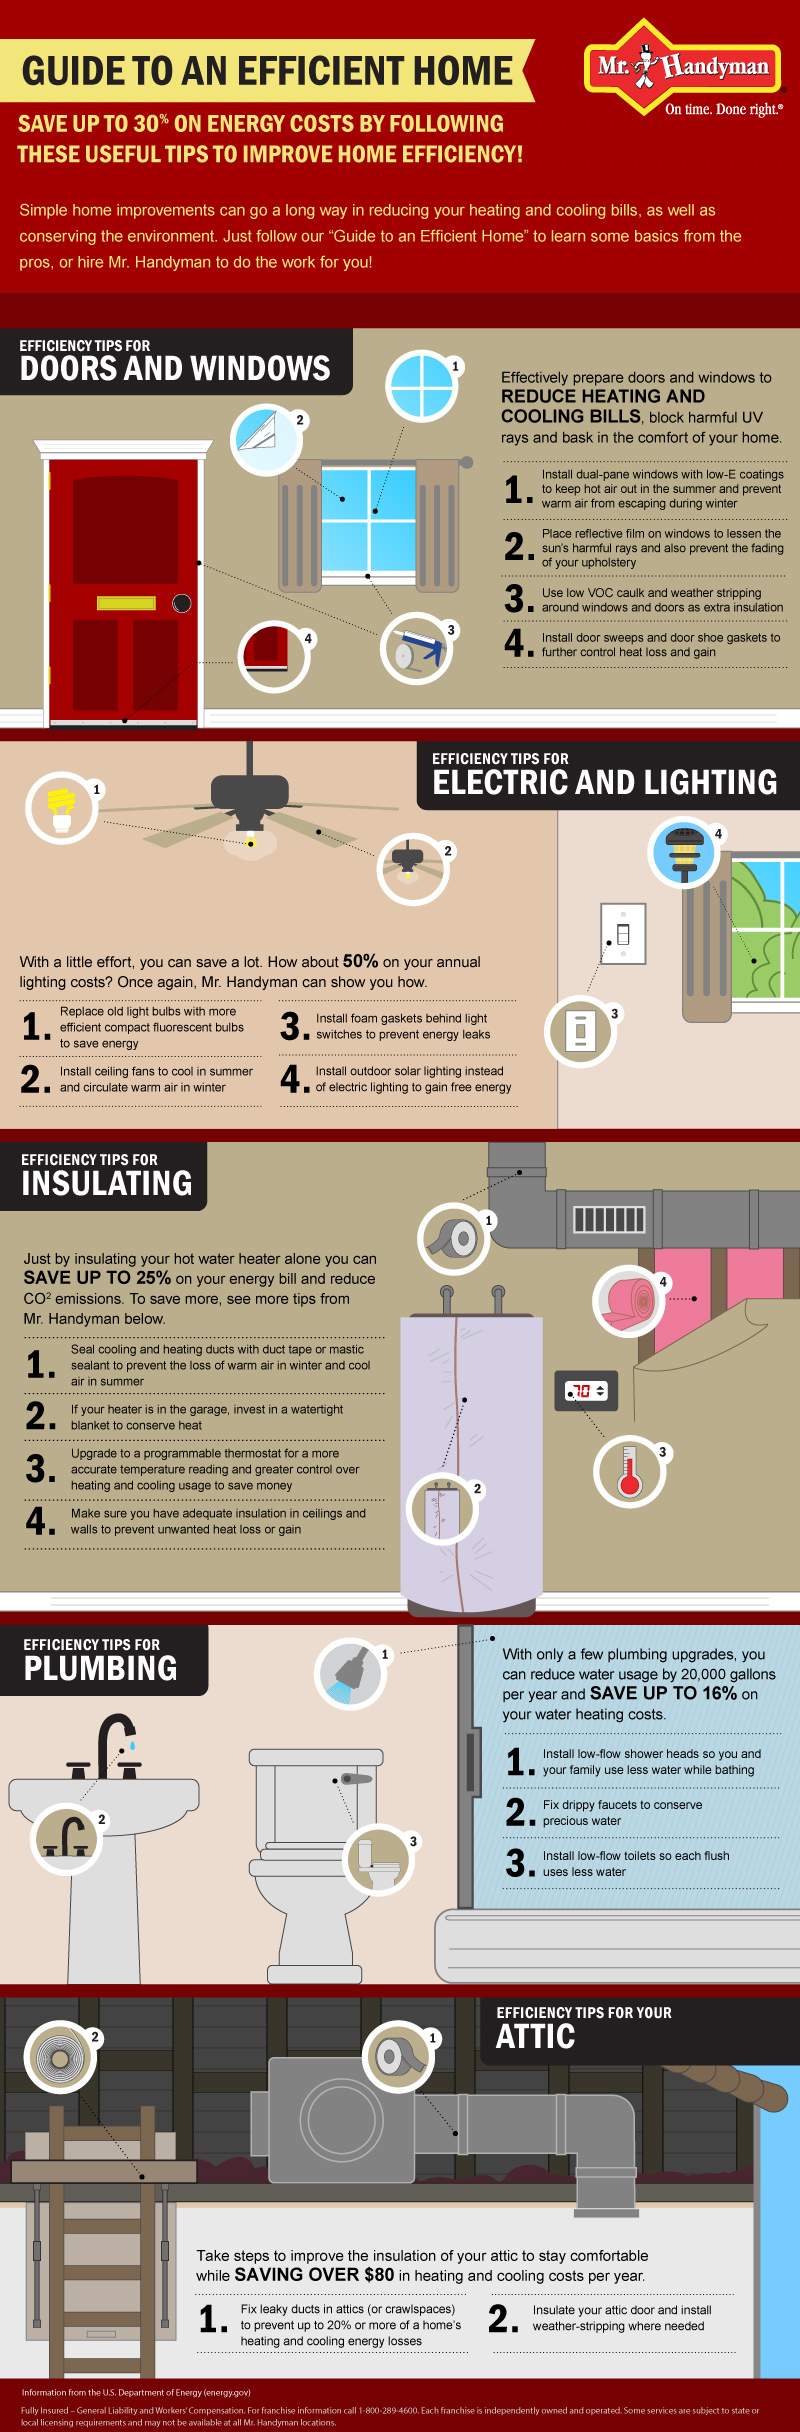 Guide to an Efficient Home infographic